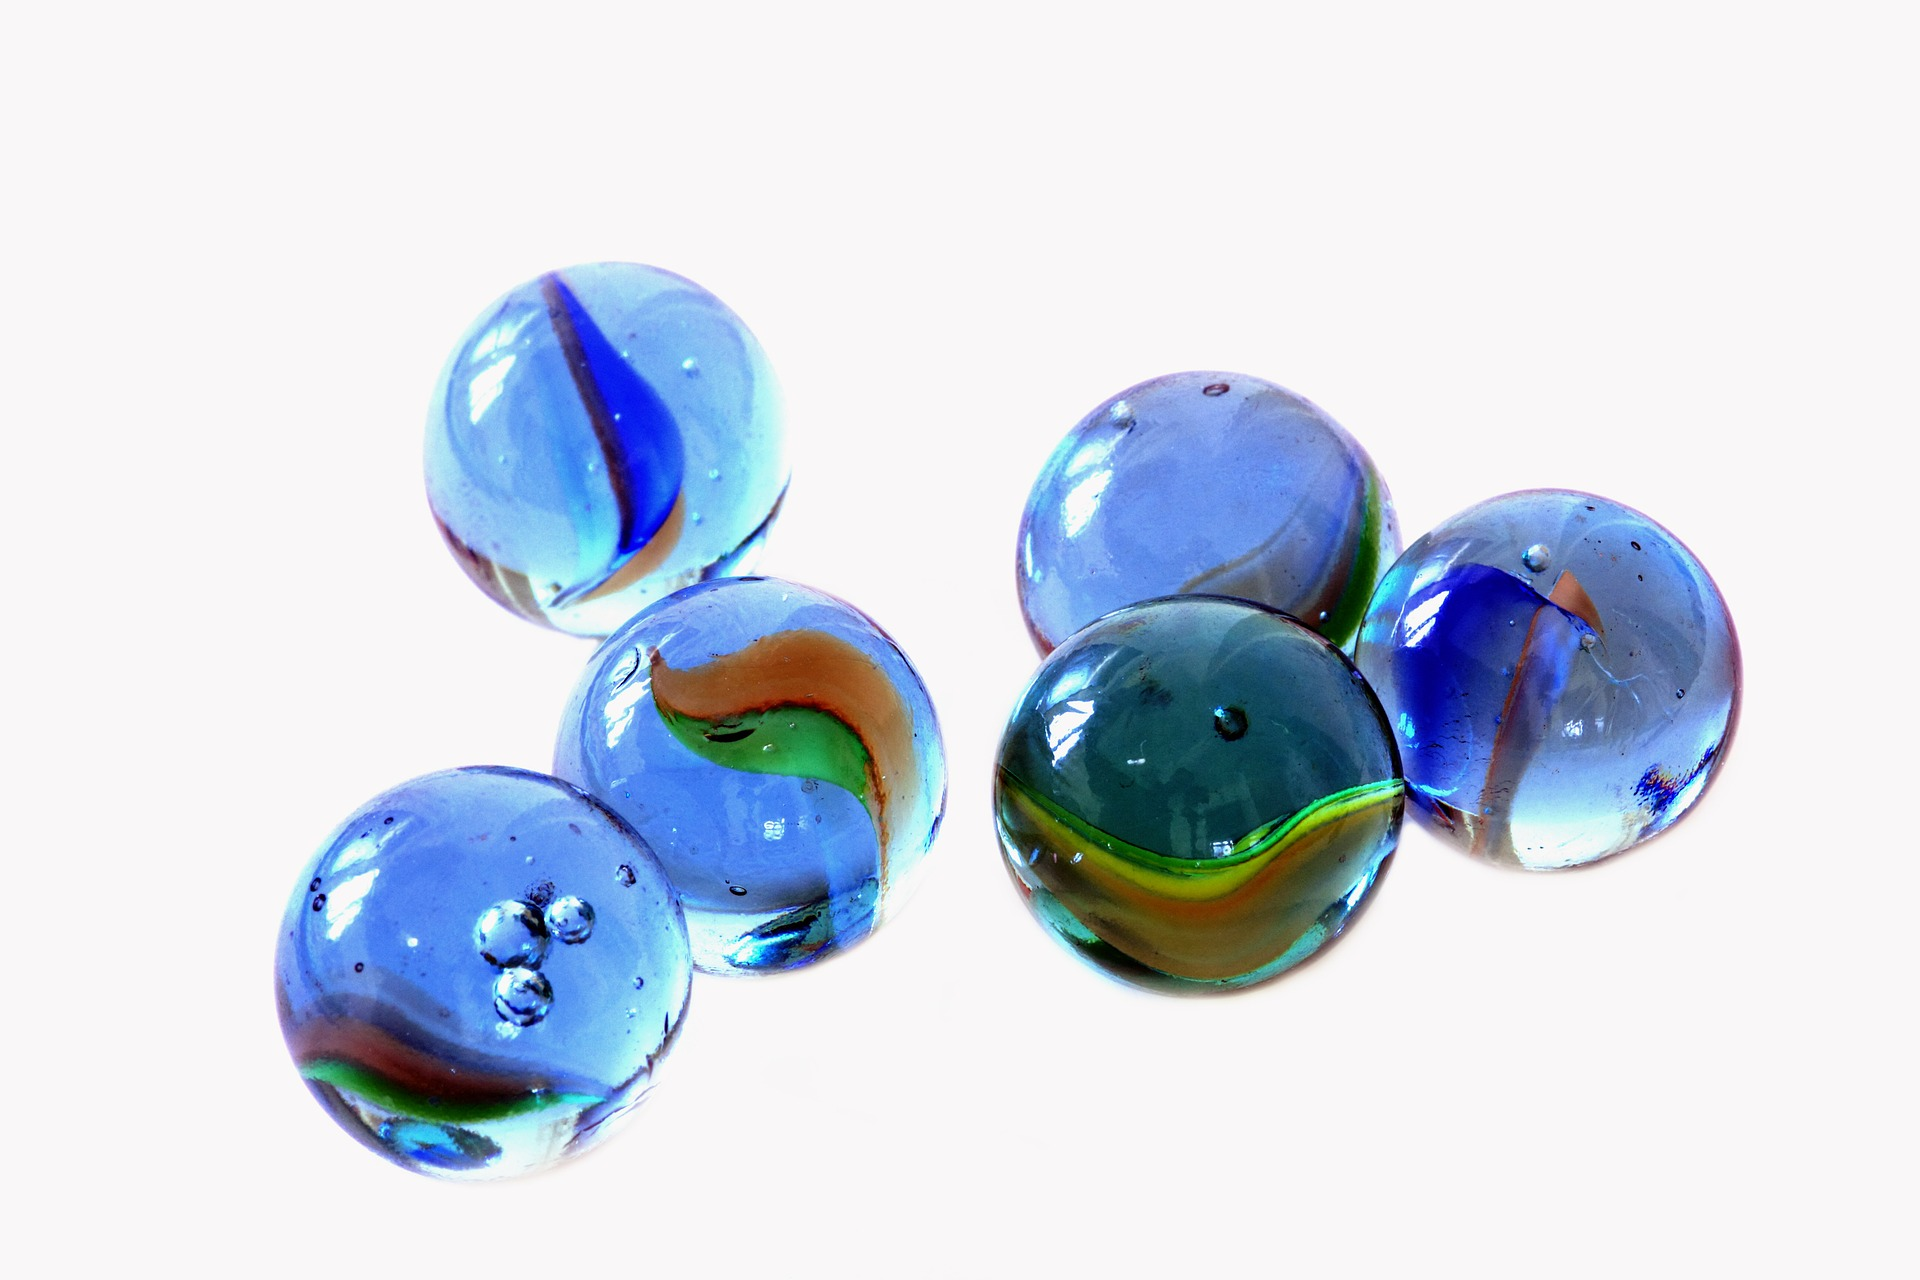 Small Blue Marbles transparent